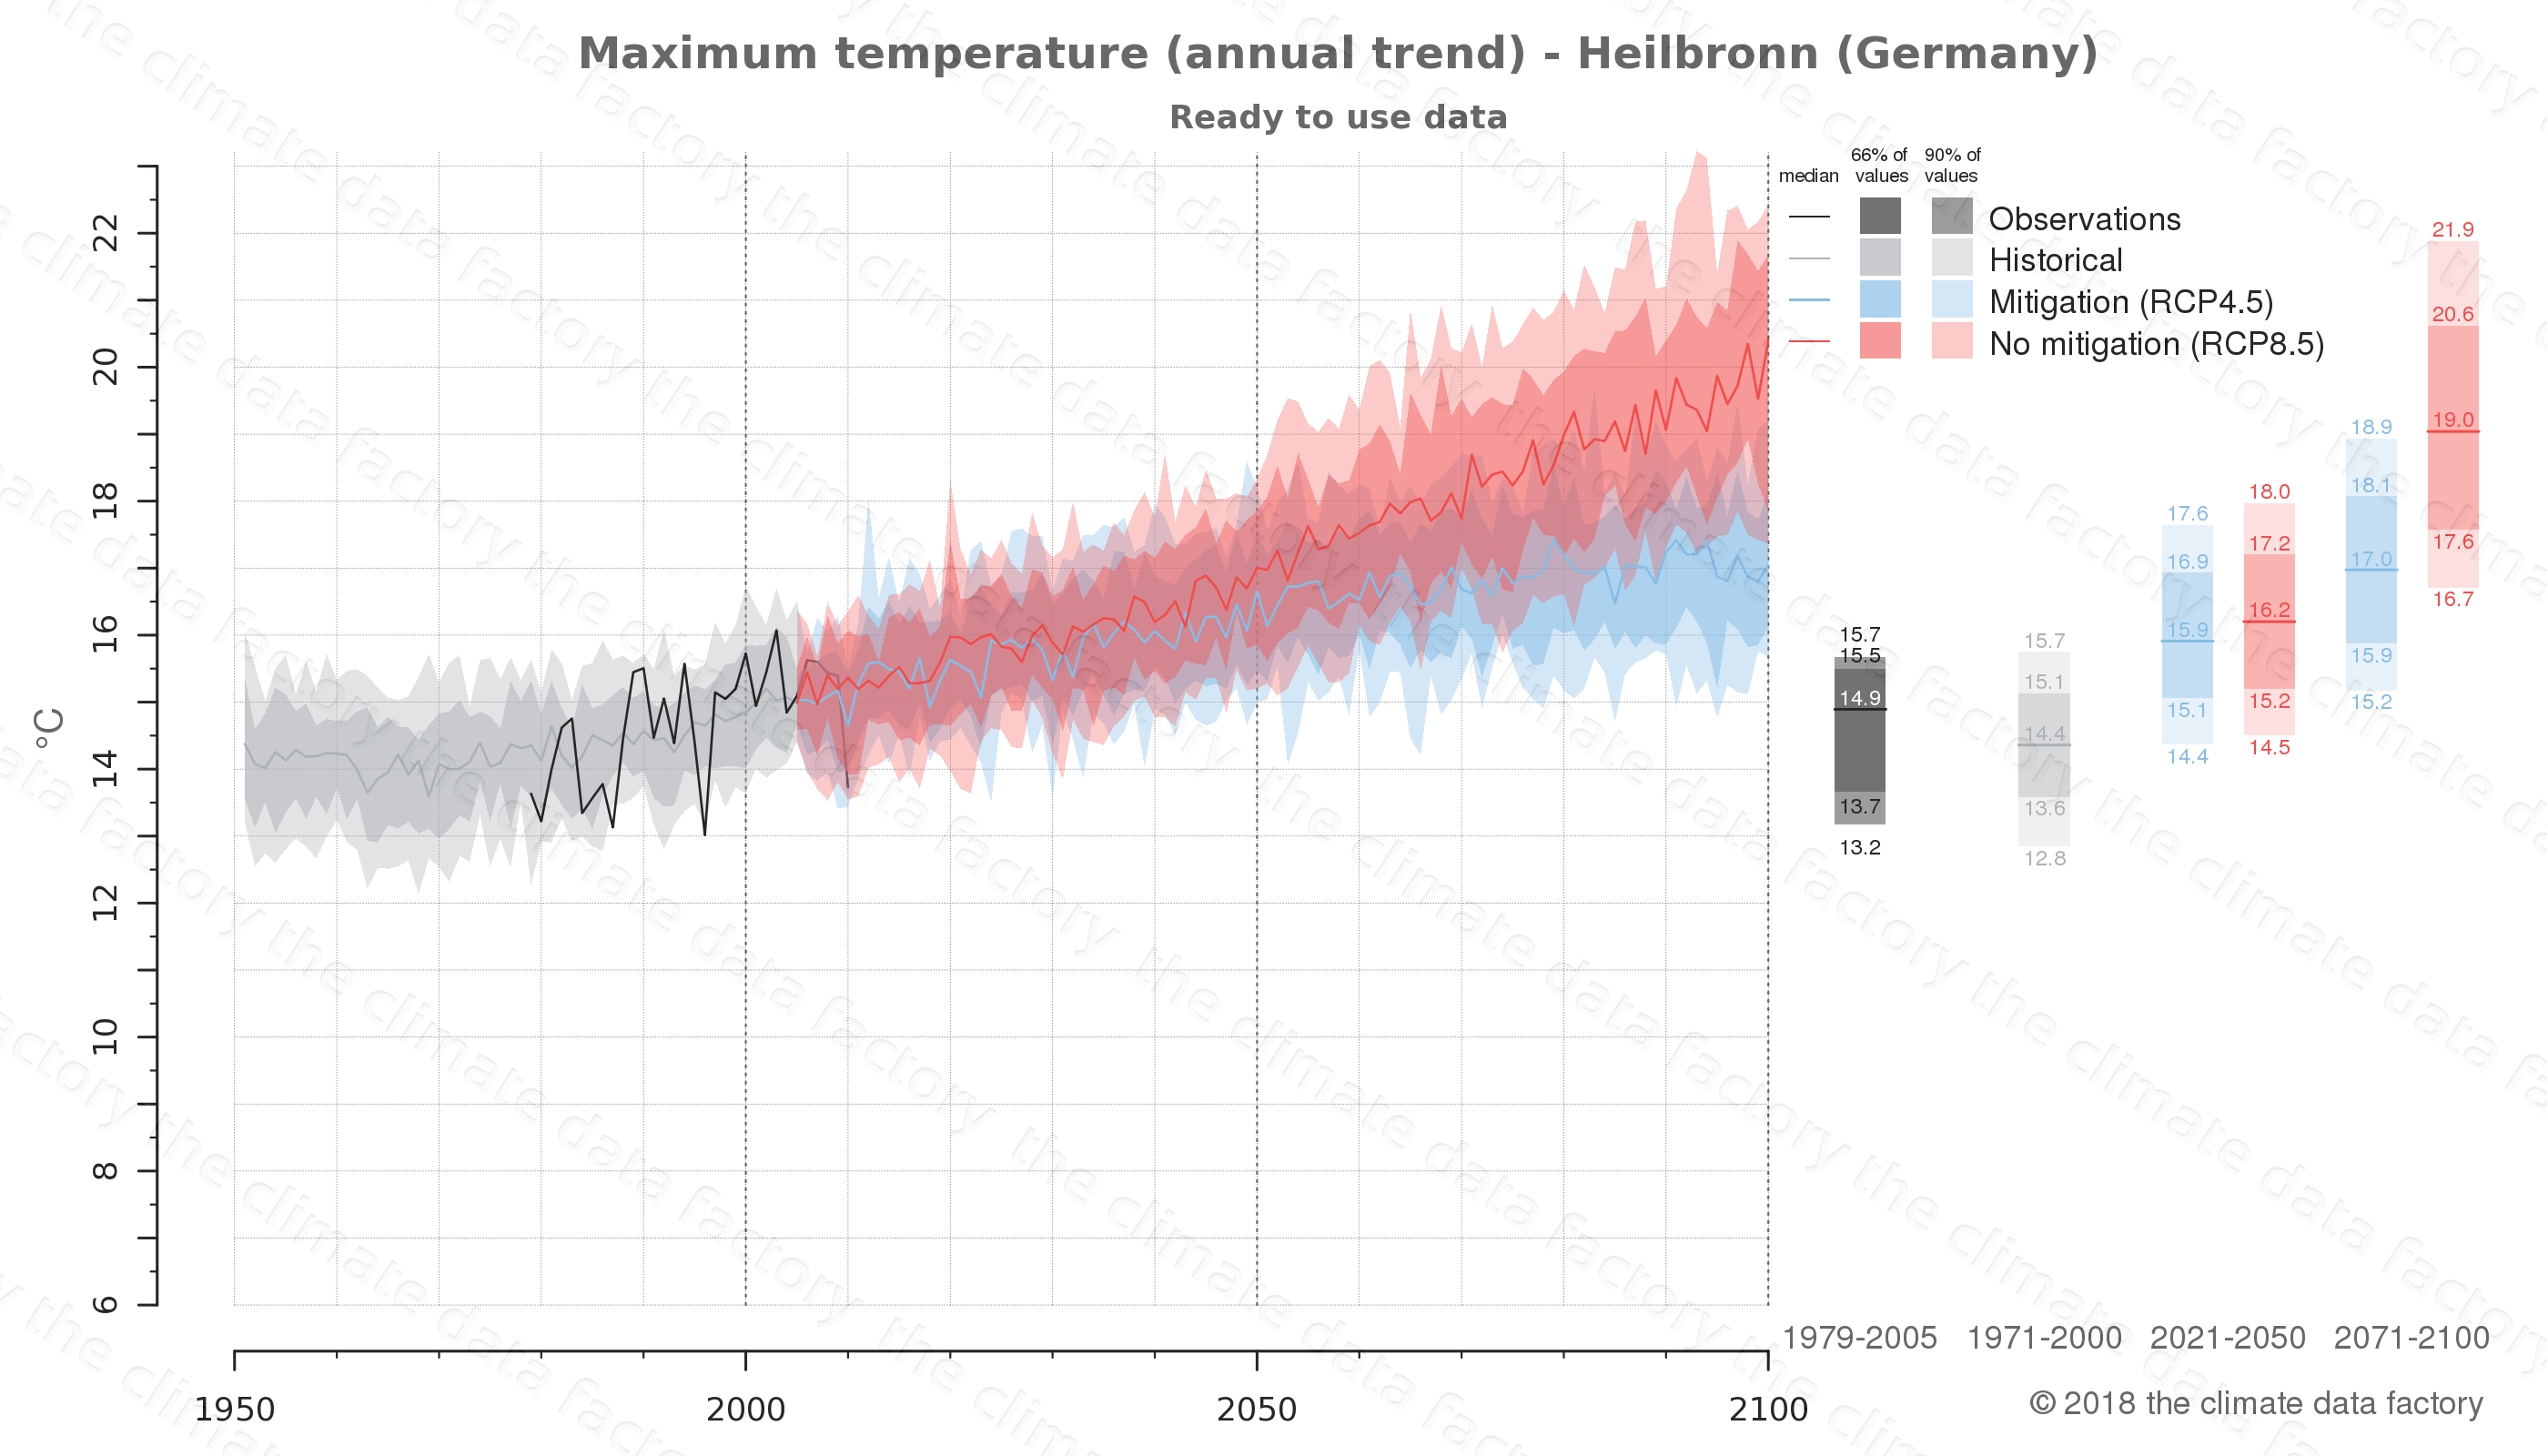 climate change data policy adaptation climate graph city data maximum-temperature heilbronn germany